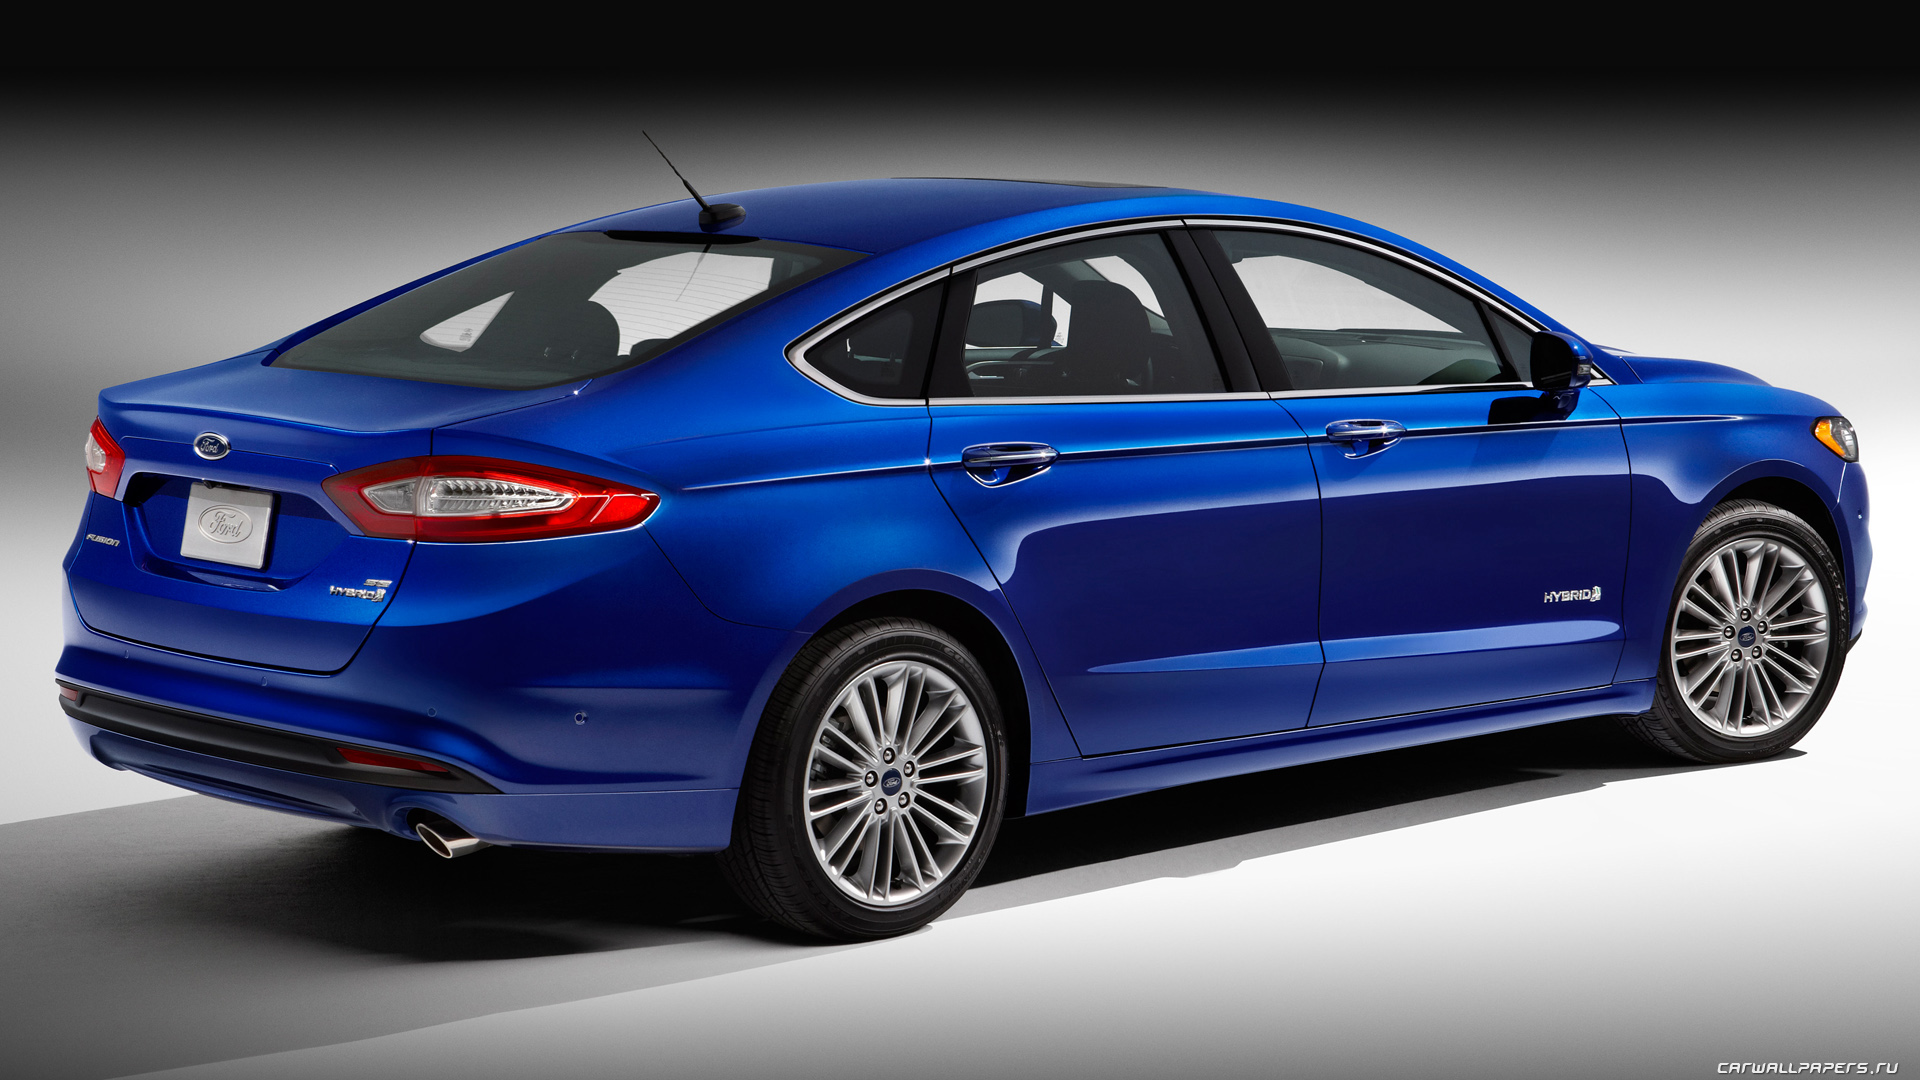 ford fusion usa images #3